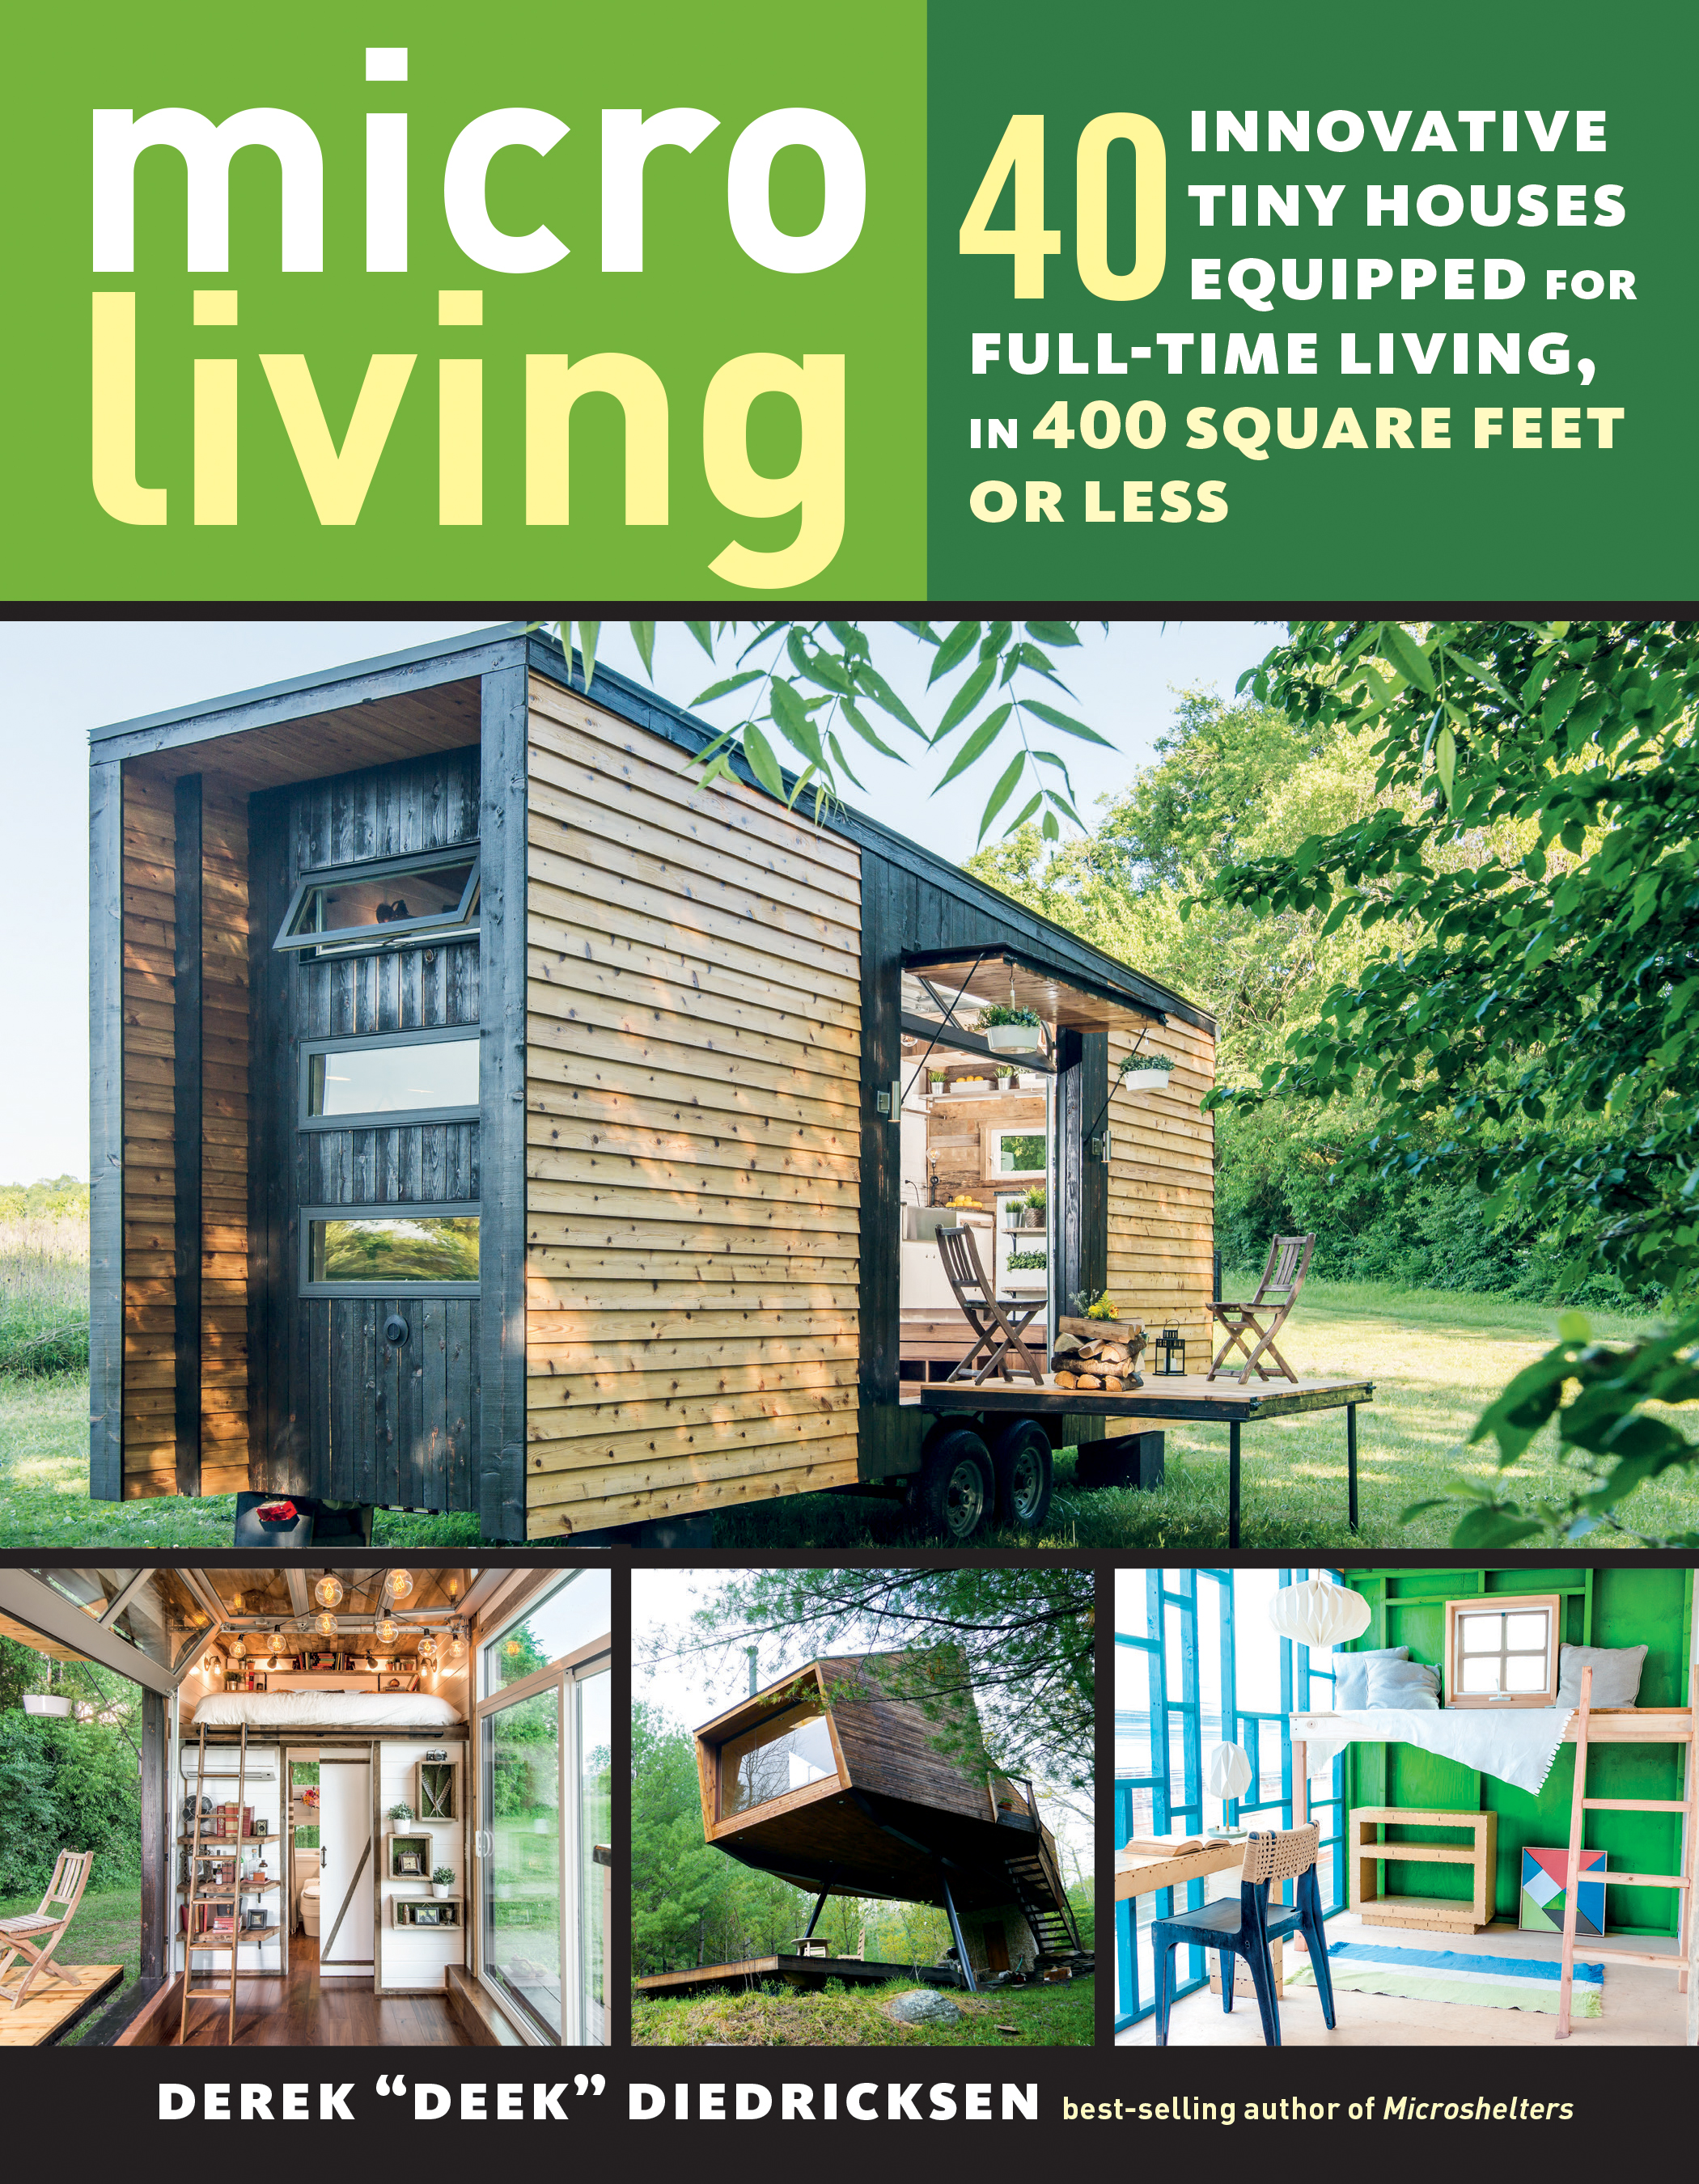 Micro Living 40 Innovative Tiny Houses Equipped for Full-Time Living, in 400 Square Feet or Less - Derek